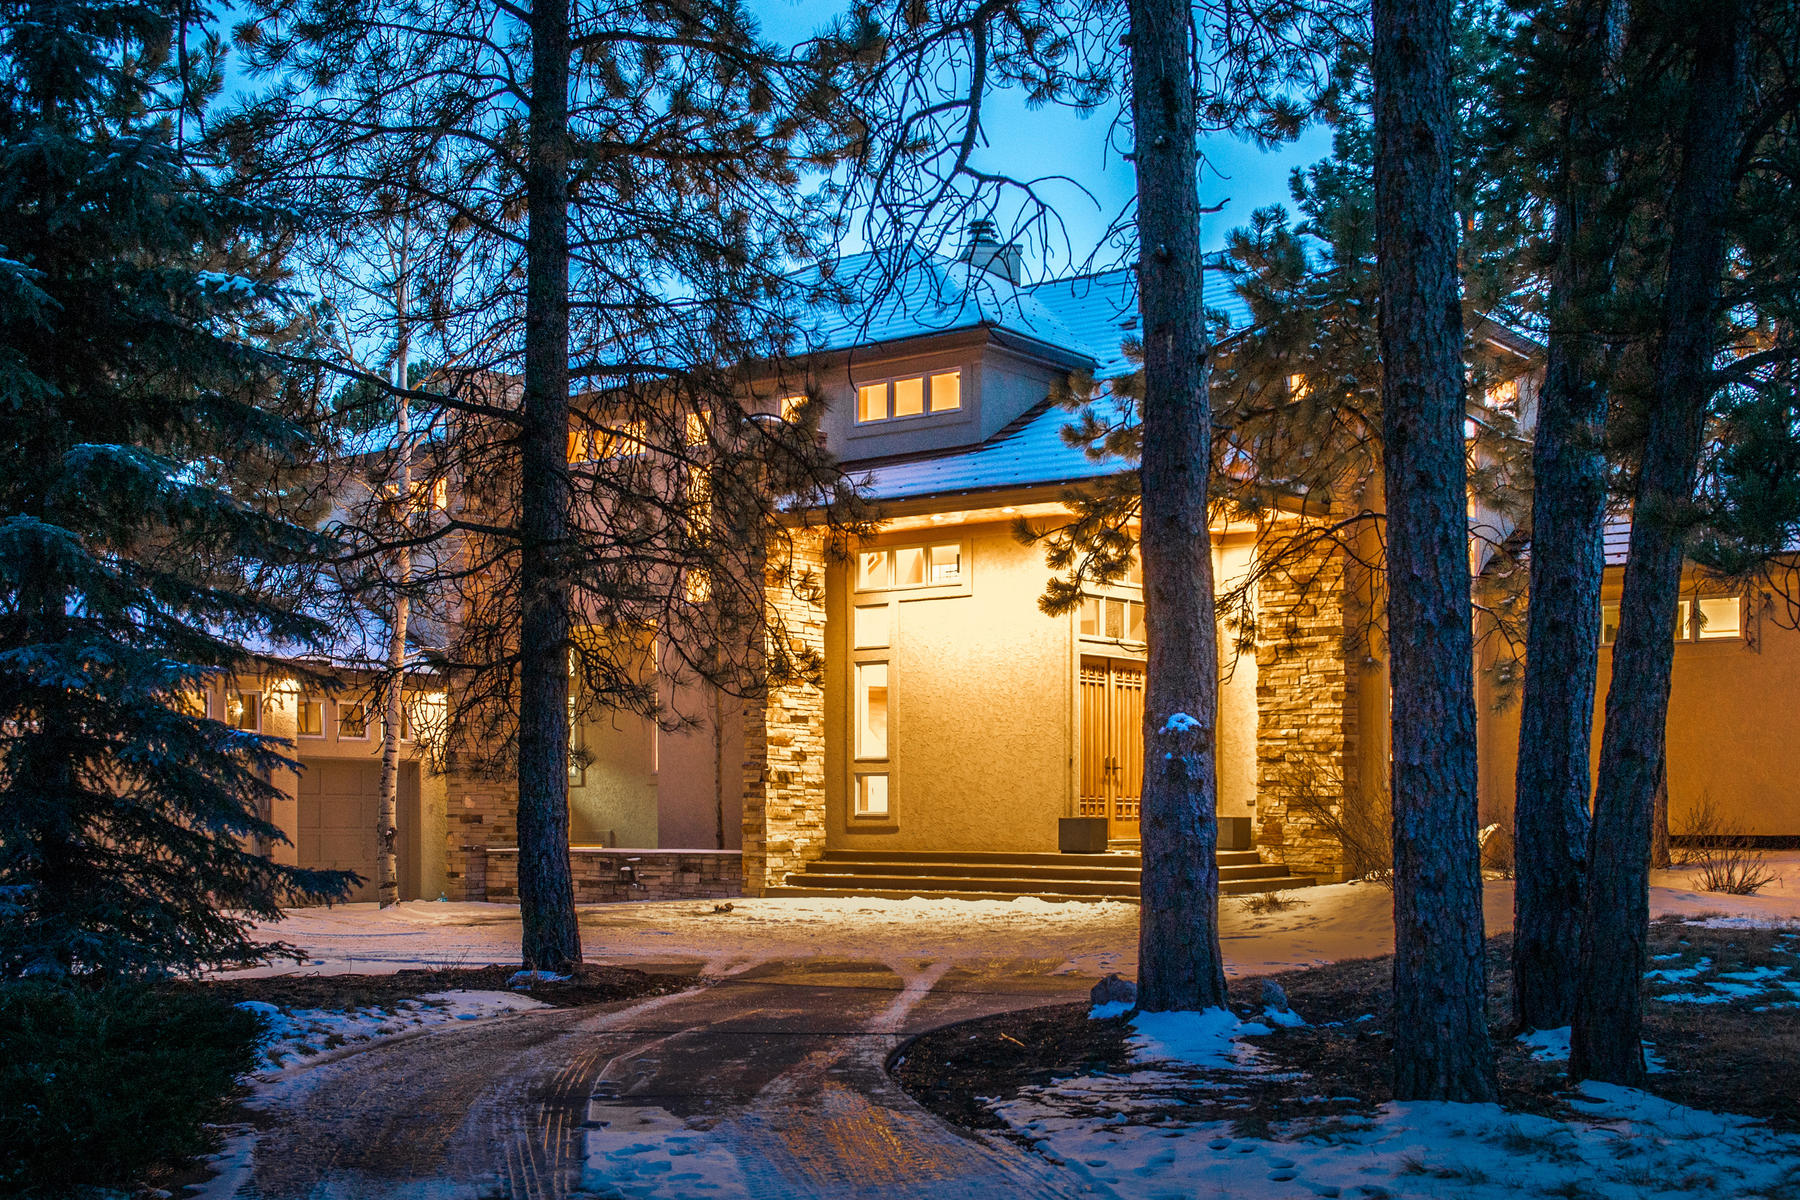 Single Family Home for Active at Unique Contemporary Architecture in Gated, Golf Community 31281 Island Drive Evergreen, Colorado 80439 United States